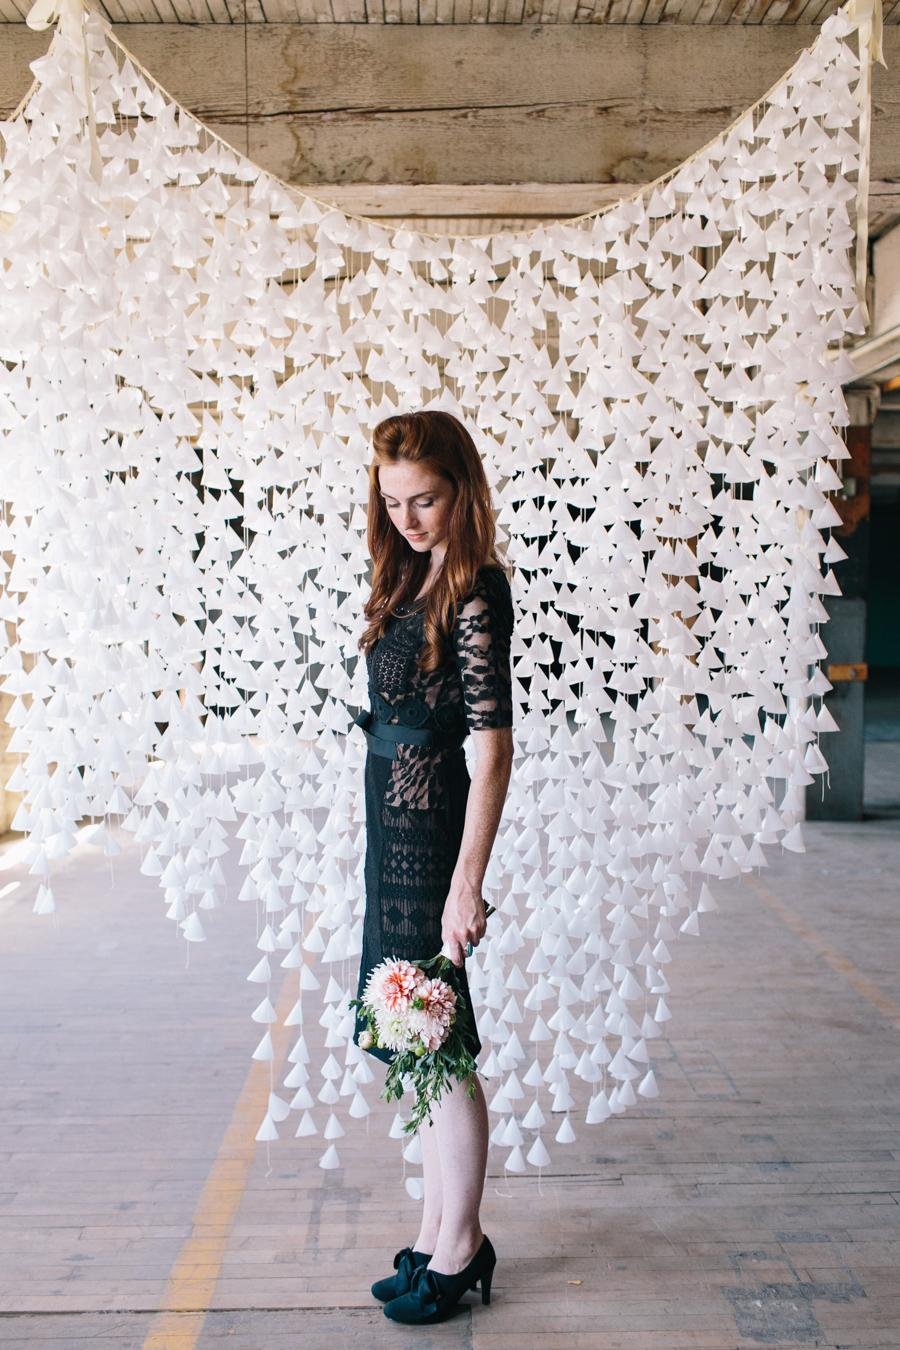 Lady posing with bouquet of flowers against wax paper backdrop in industrial site for photoshoot photobooth wedding contemporary style